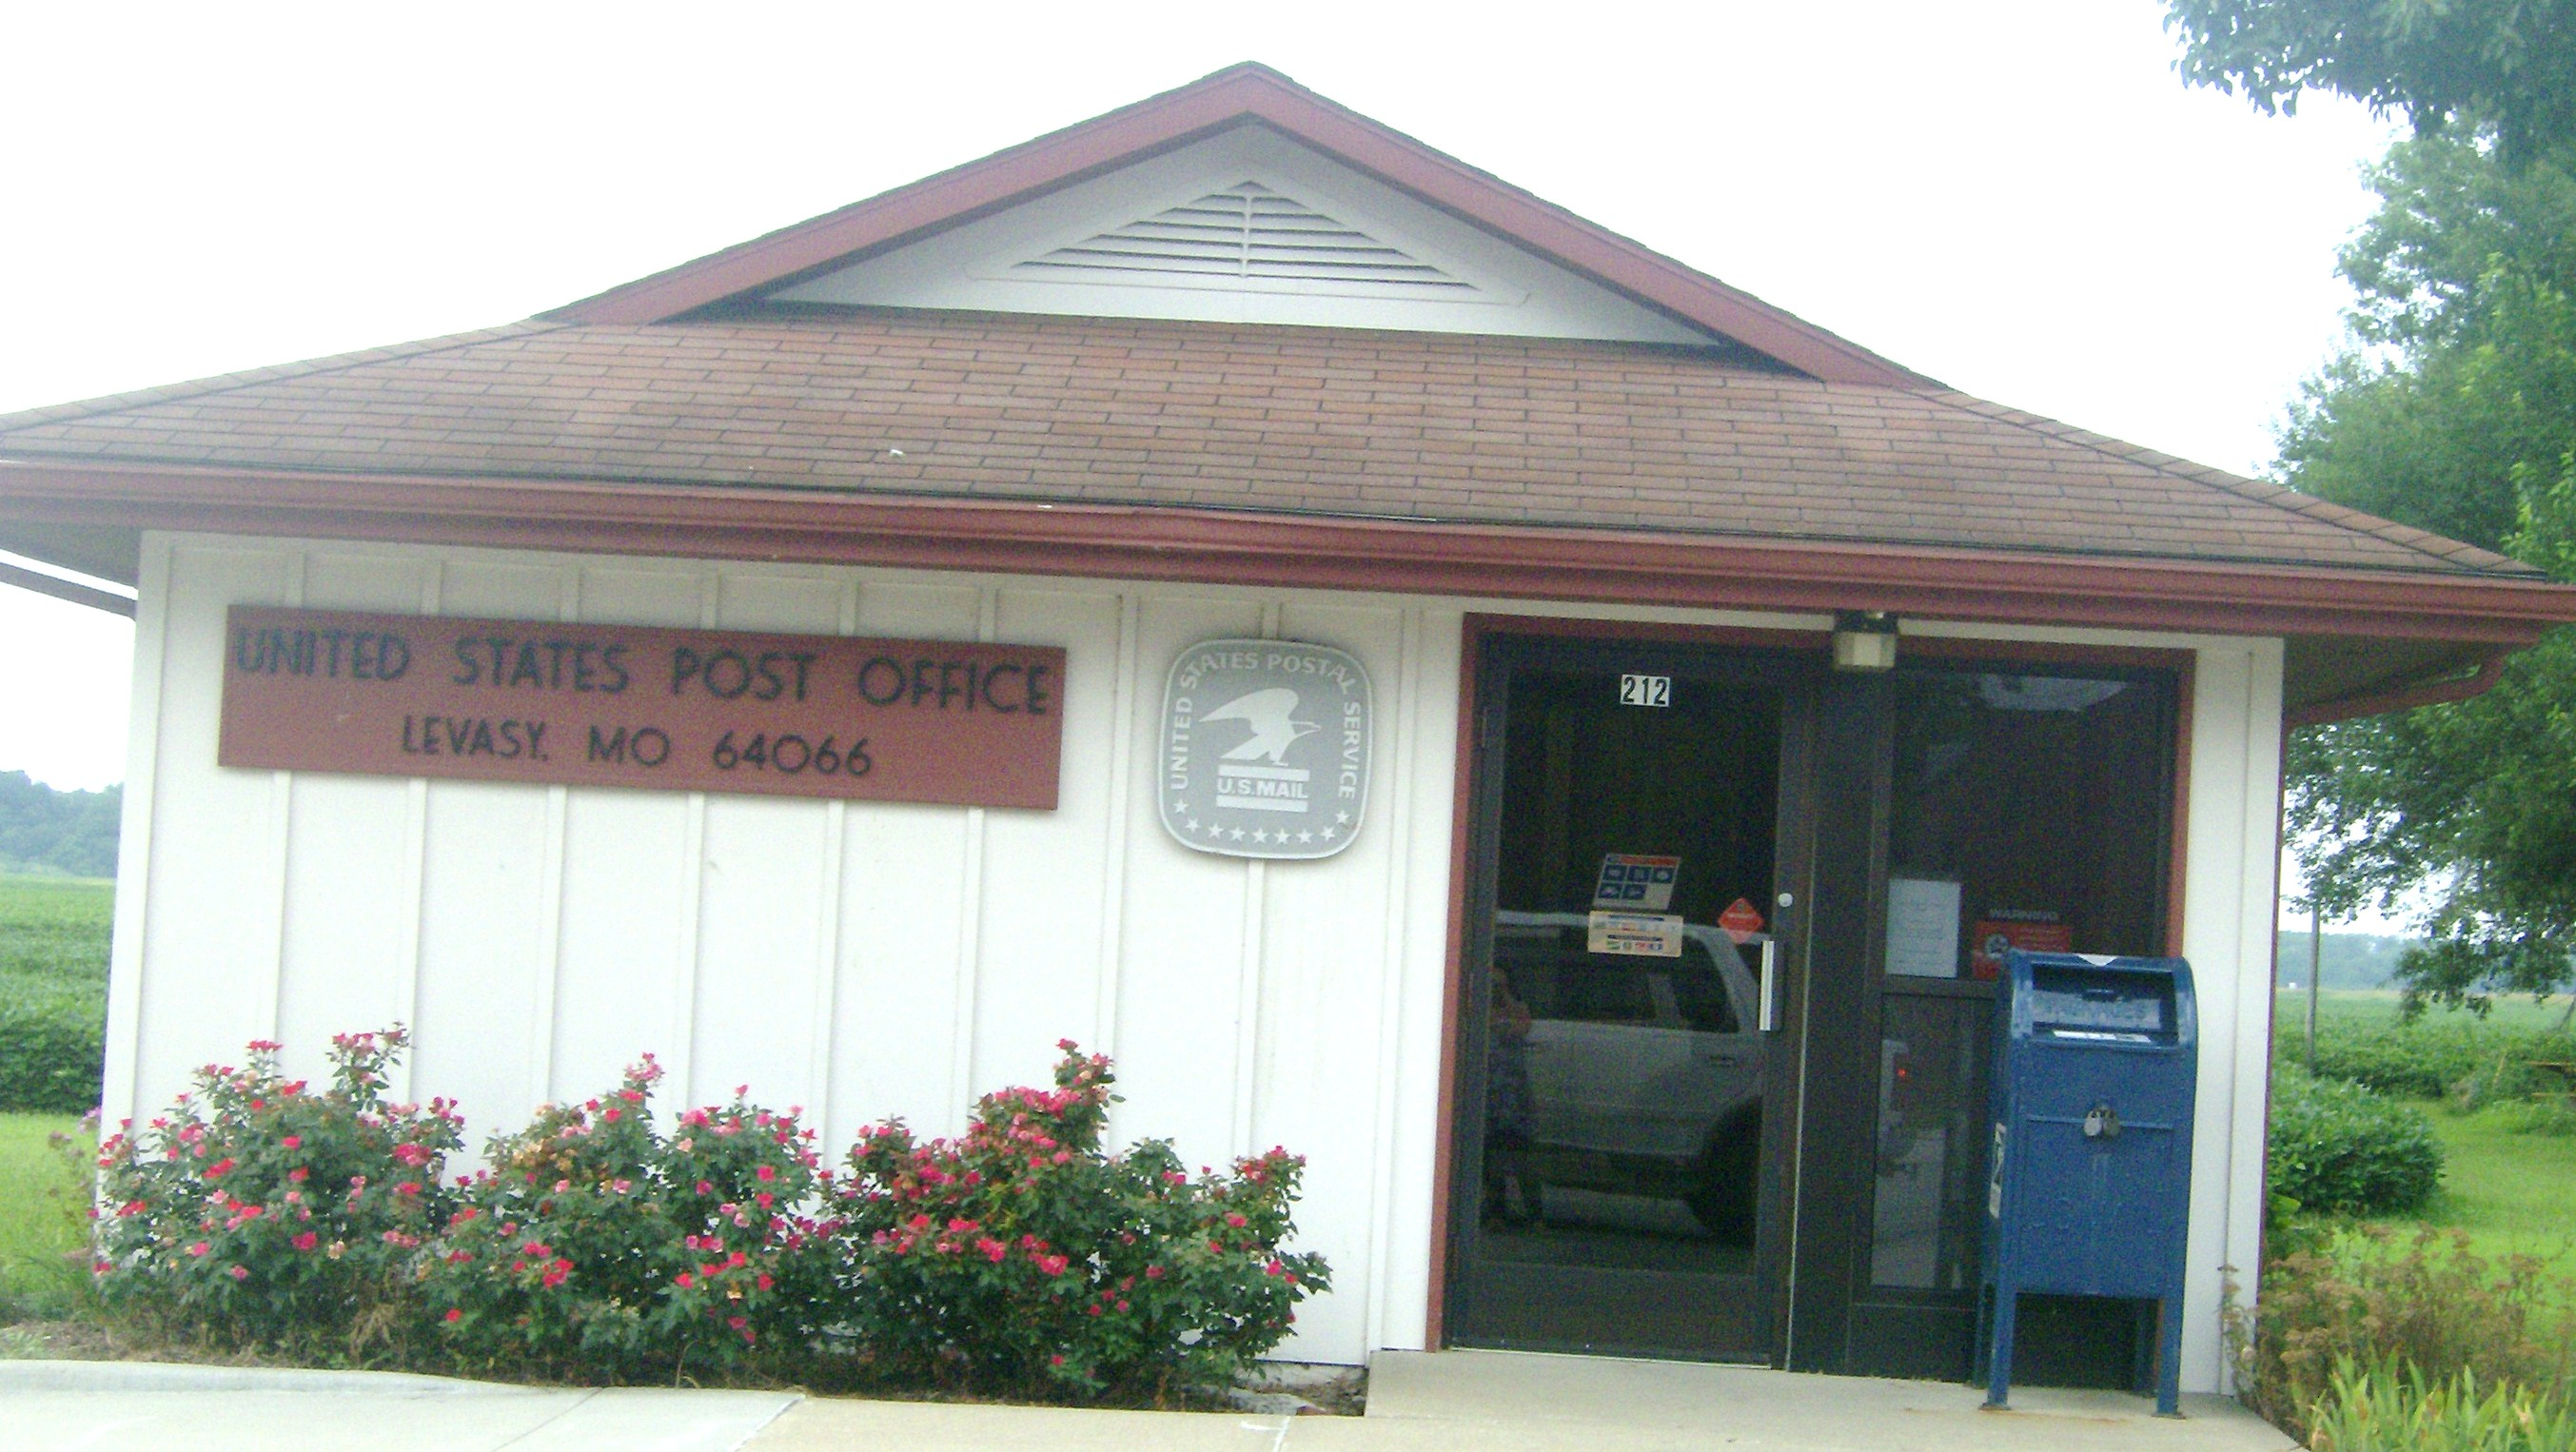 Levasy Post Office to remain open